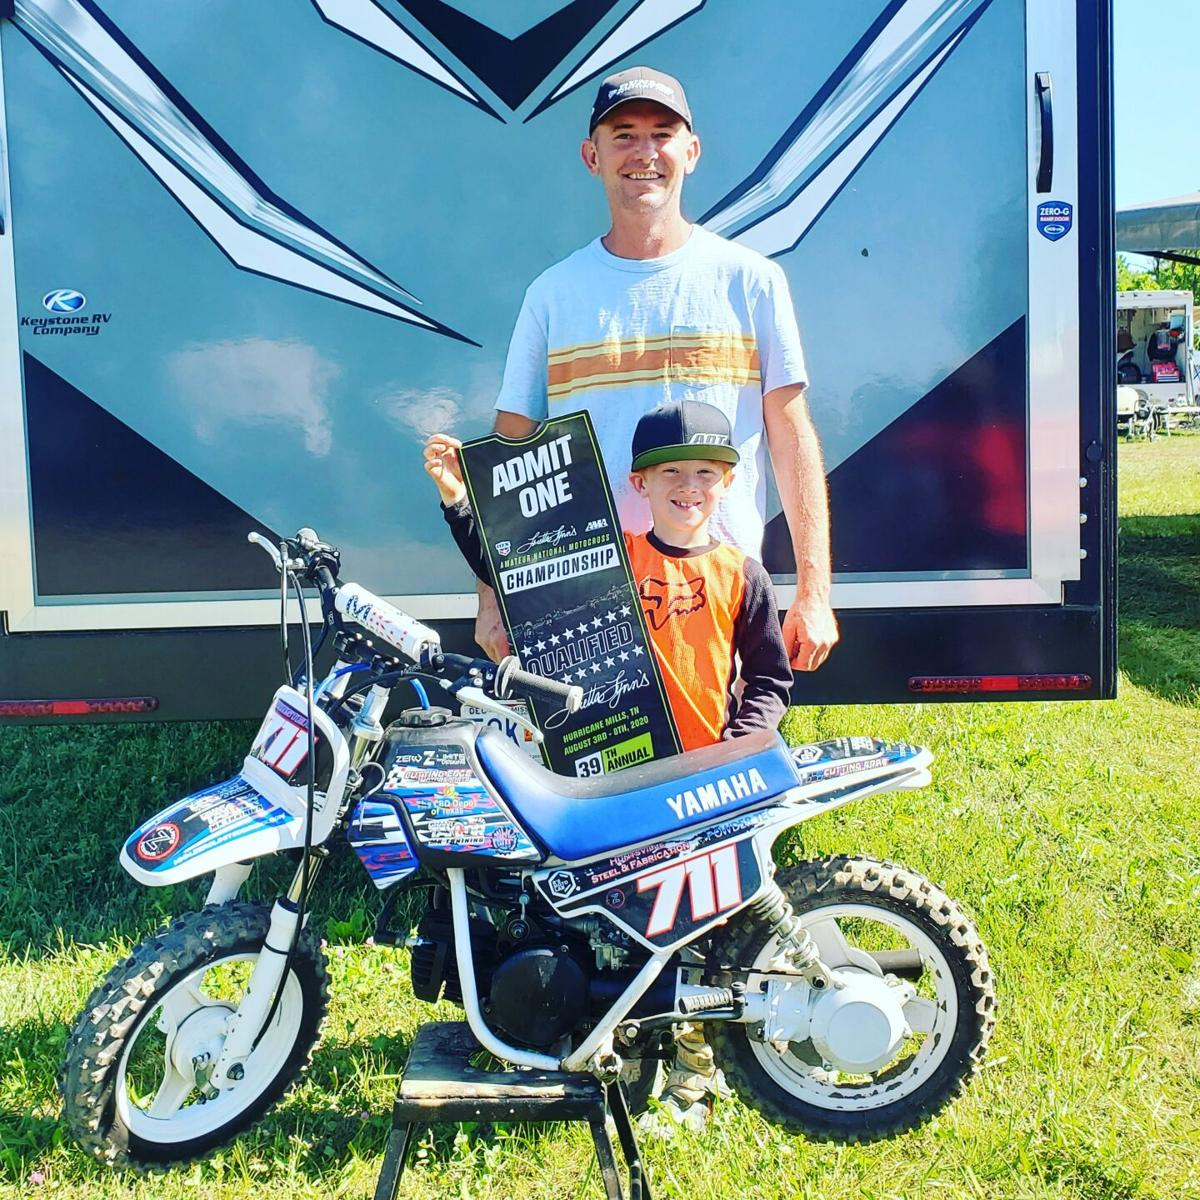 Local racer gears up for nationals